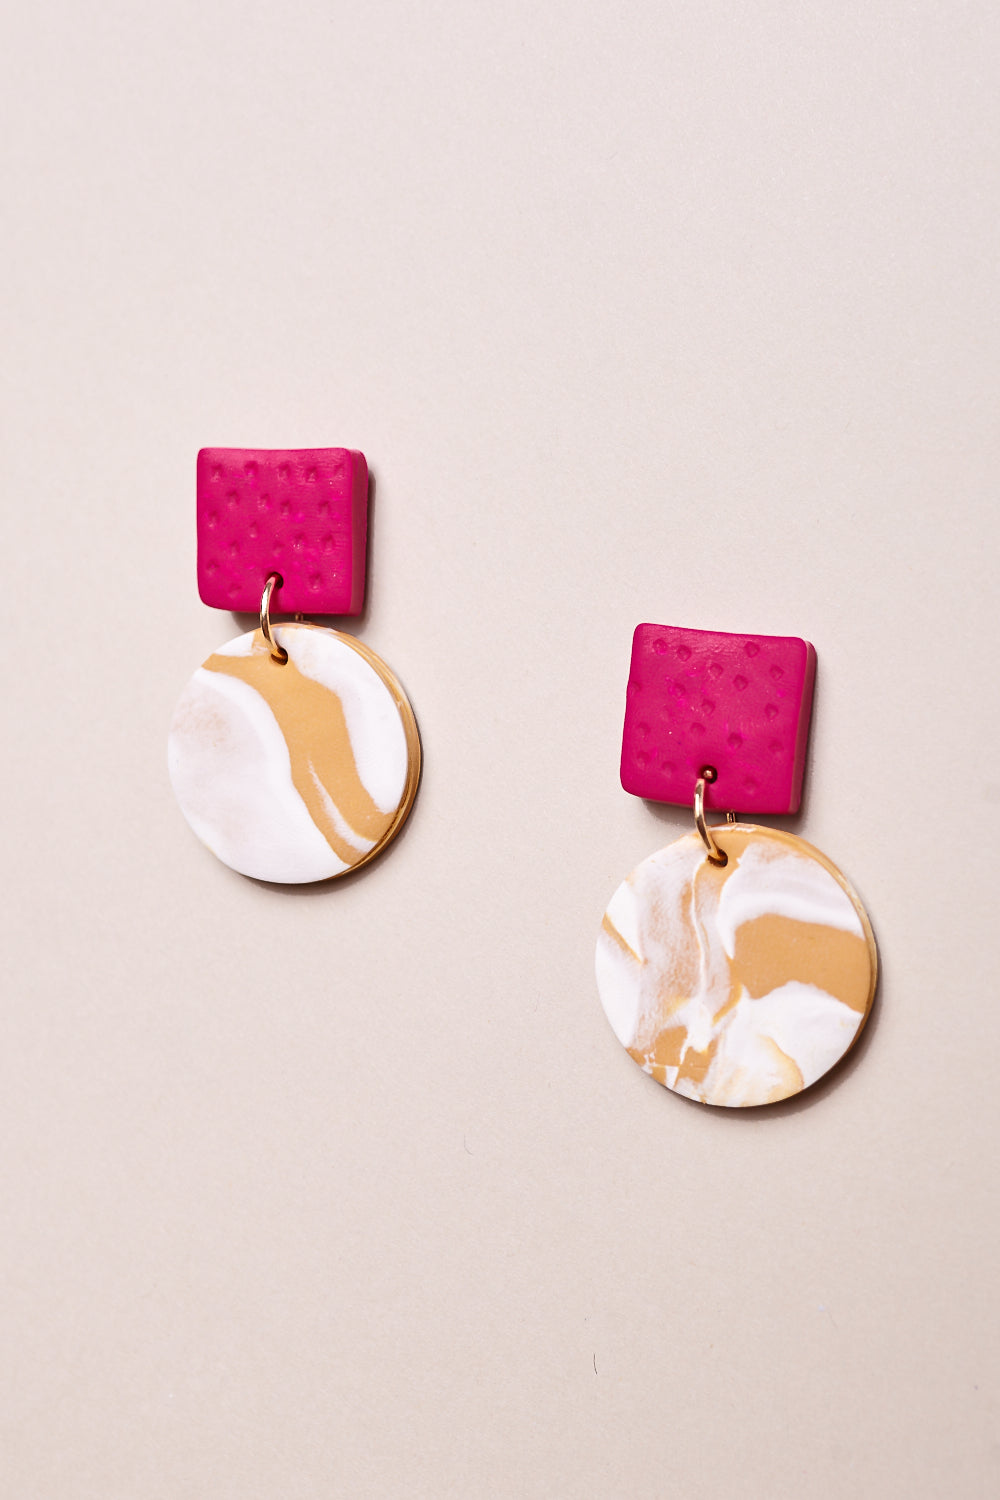 Max Earrings in Fuchsia Mustard